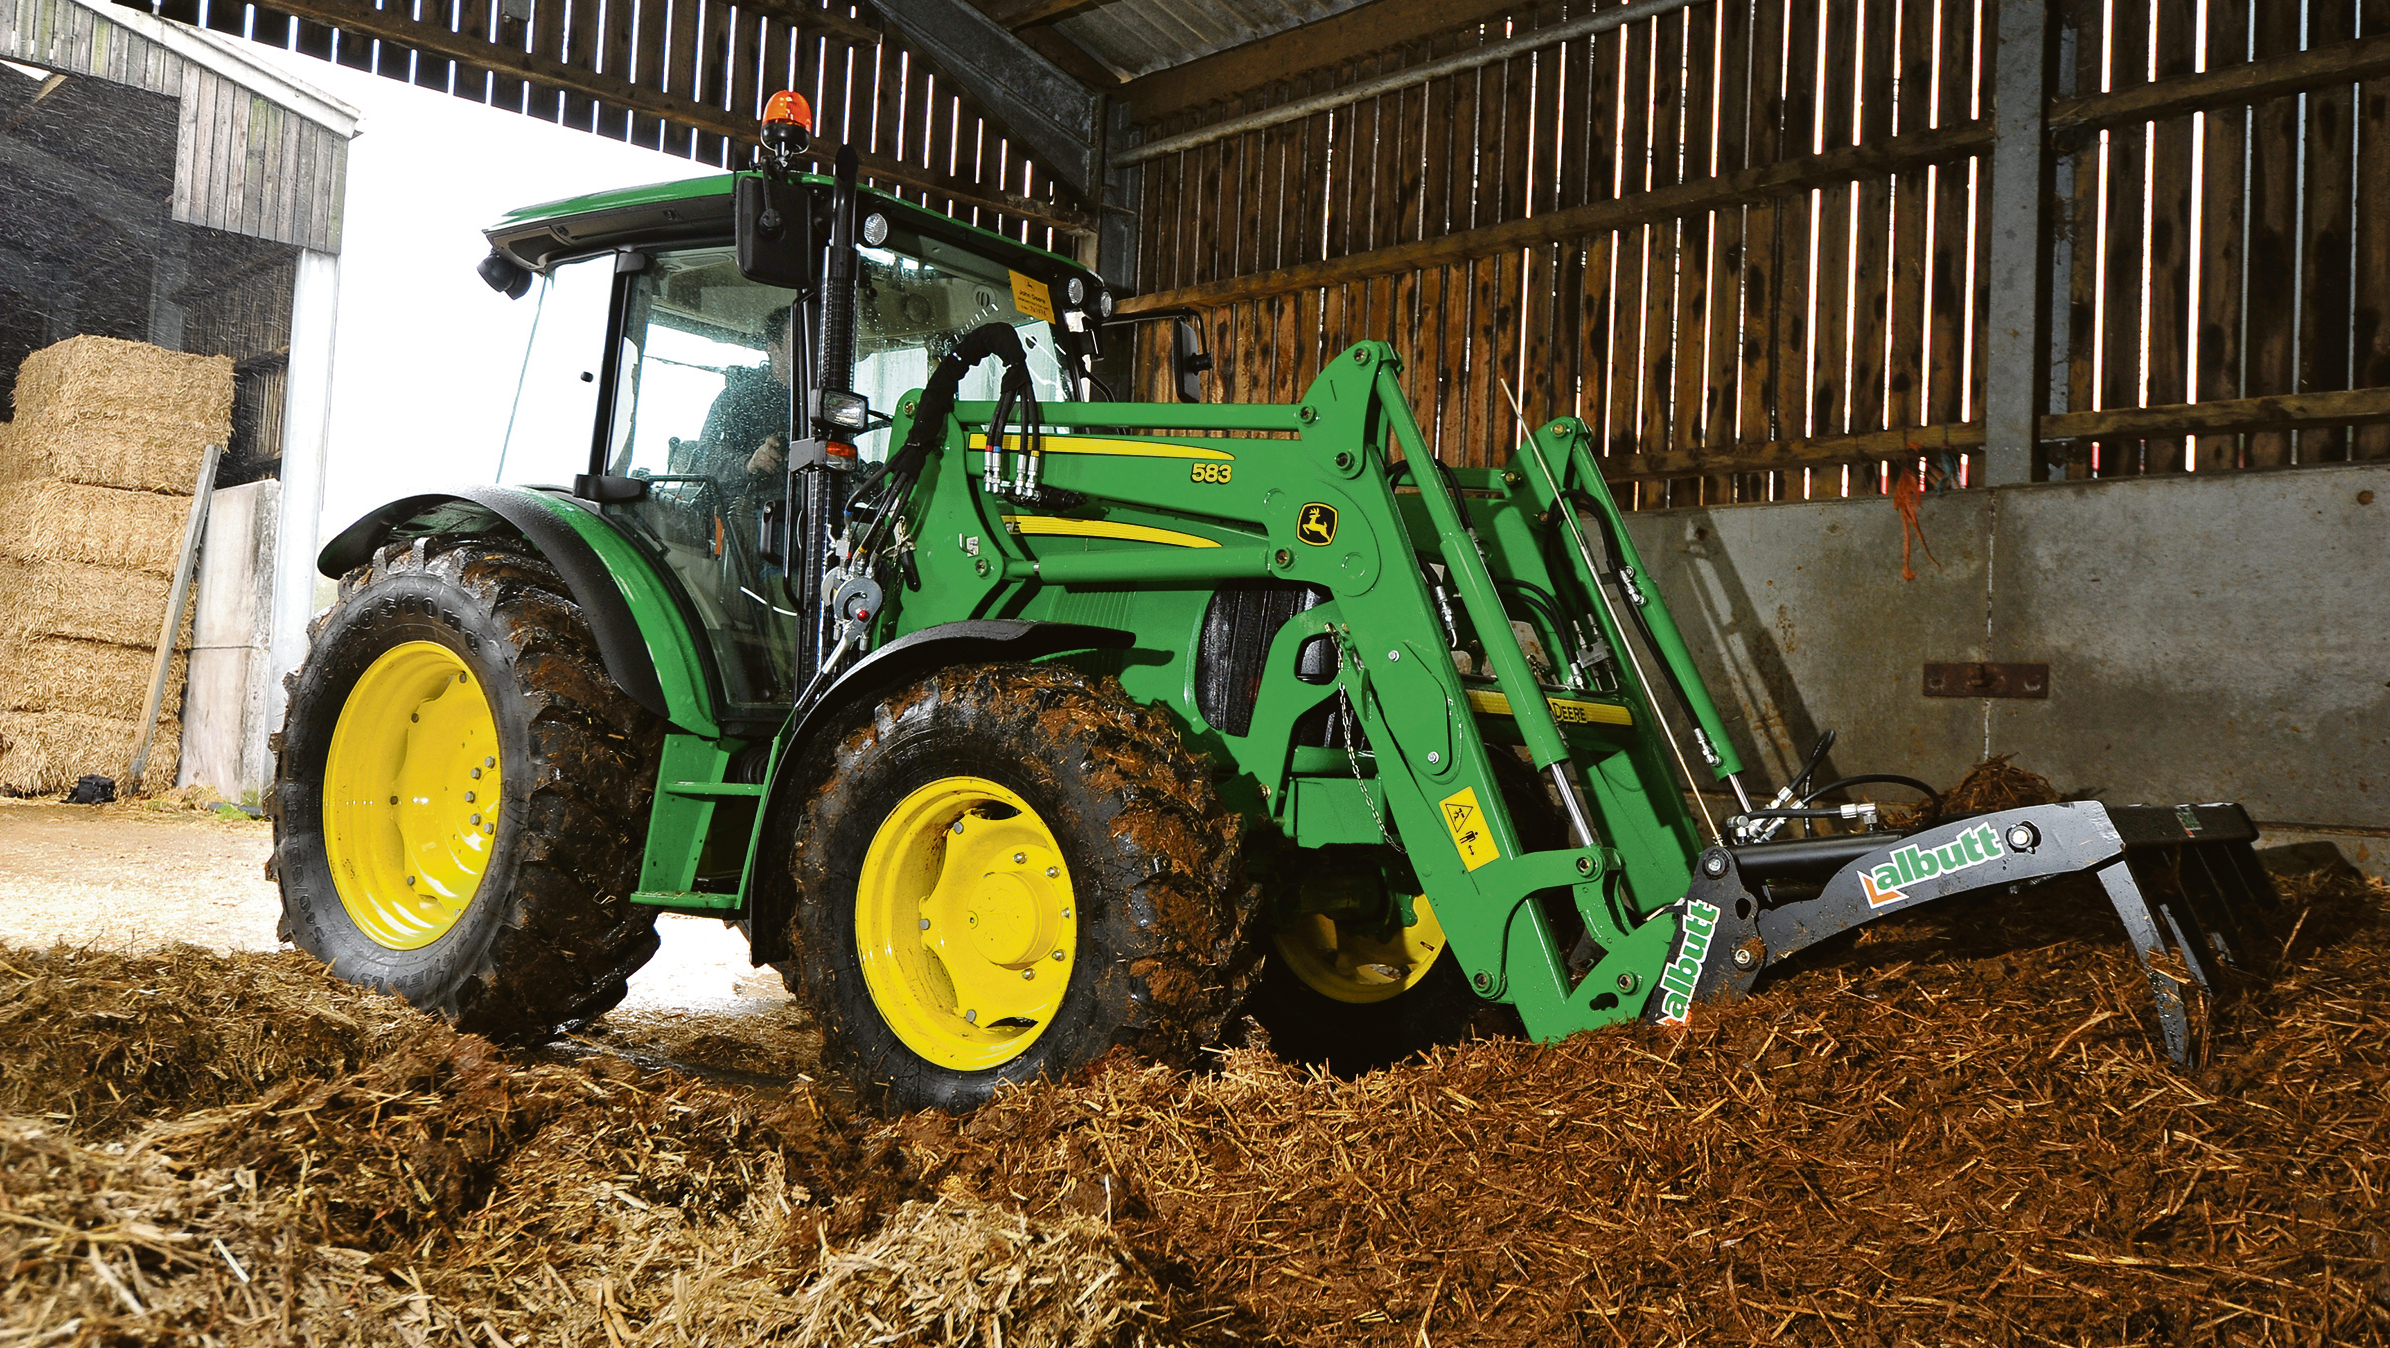 Tractor and loader test: John Deere 5R tractor with 583